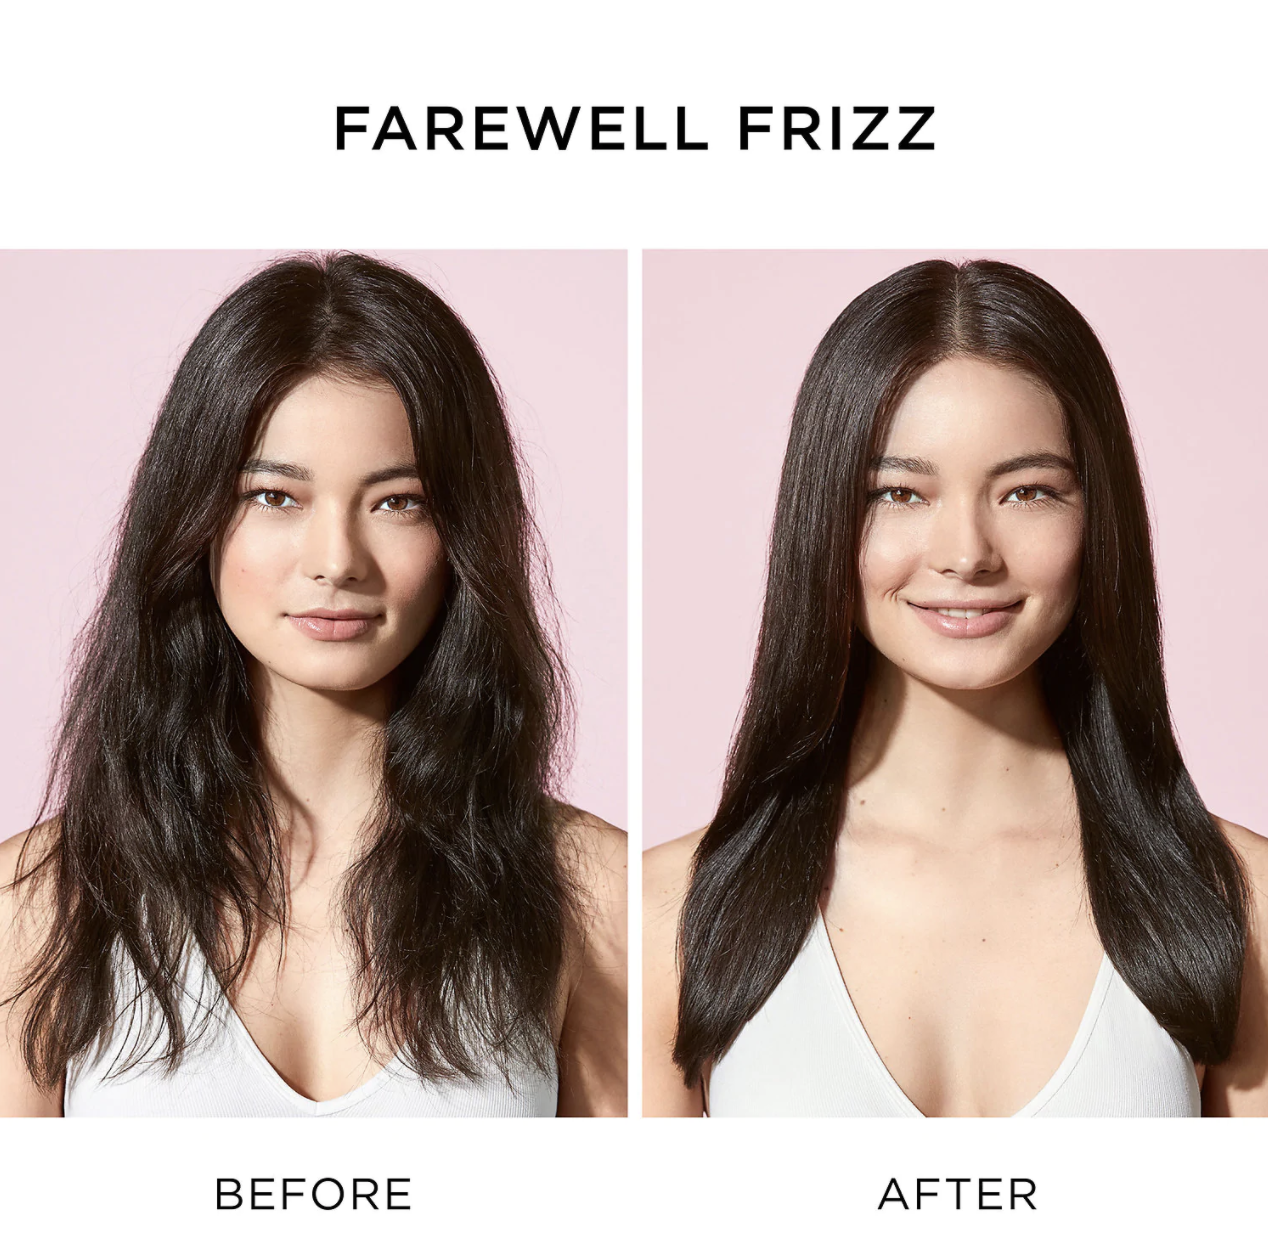 A model with frizzy flyaways showing smoother hair after using the product